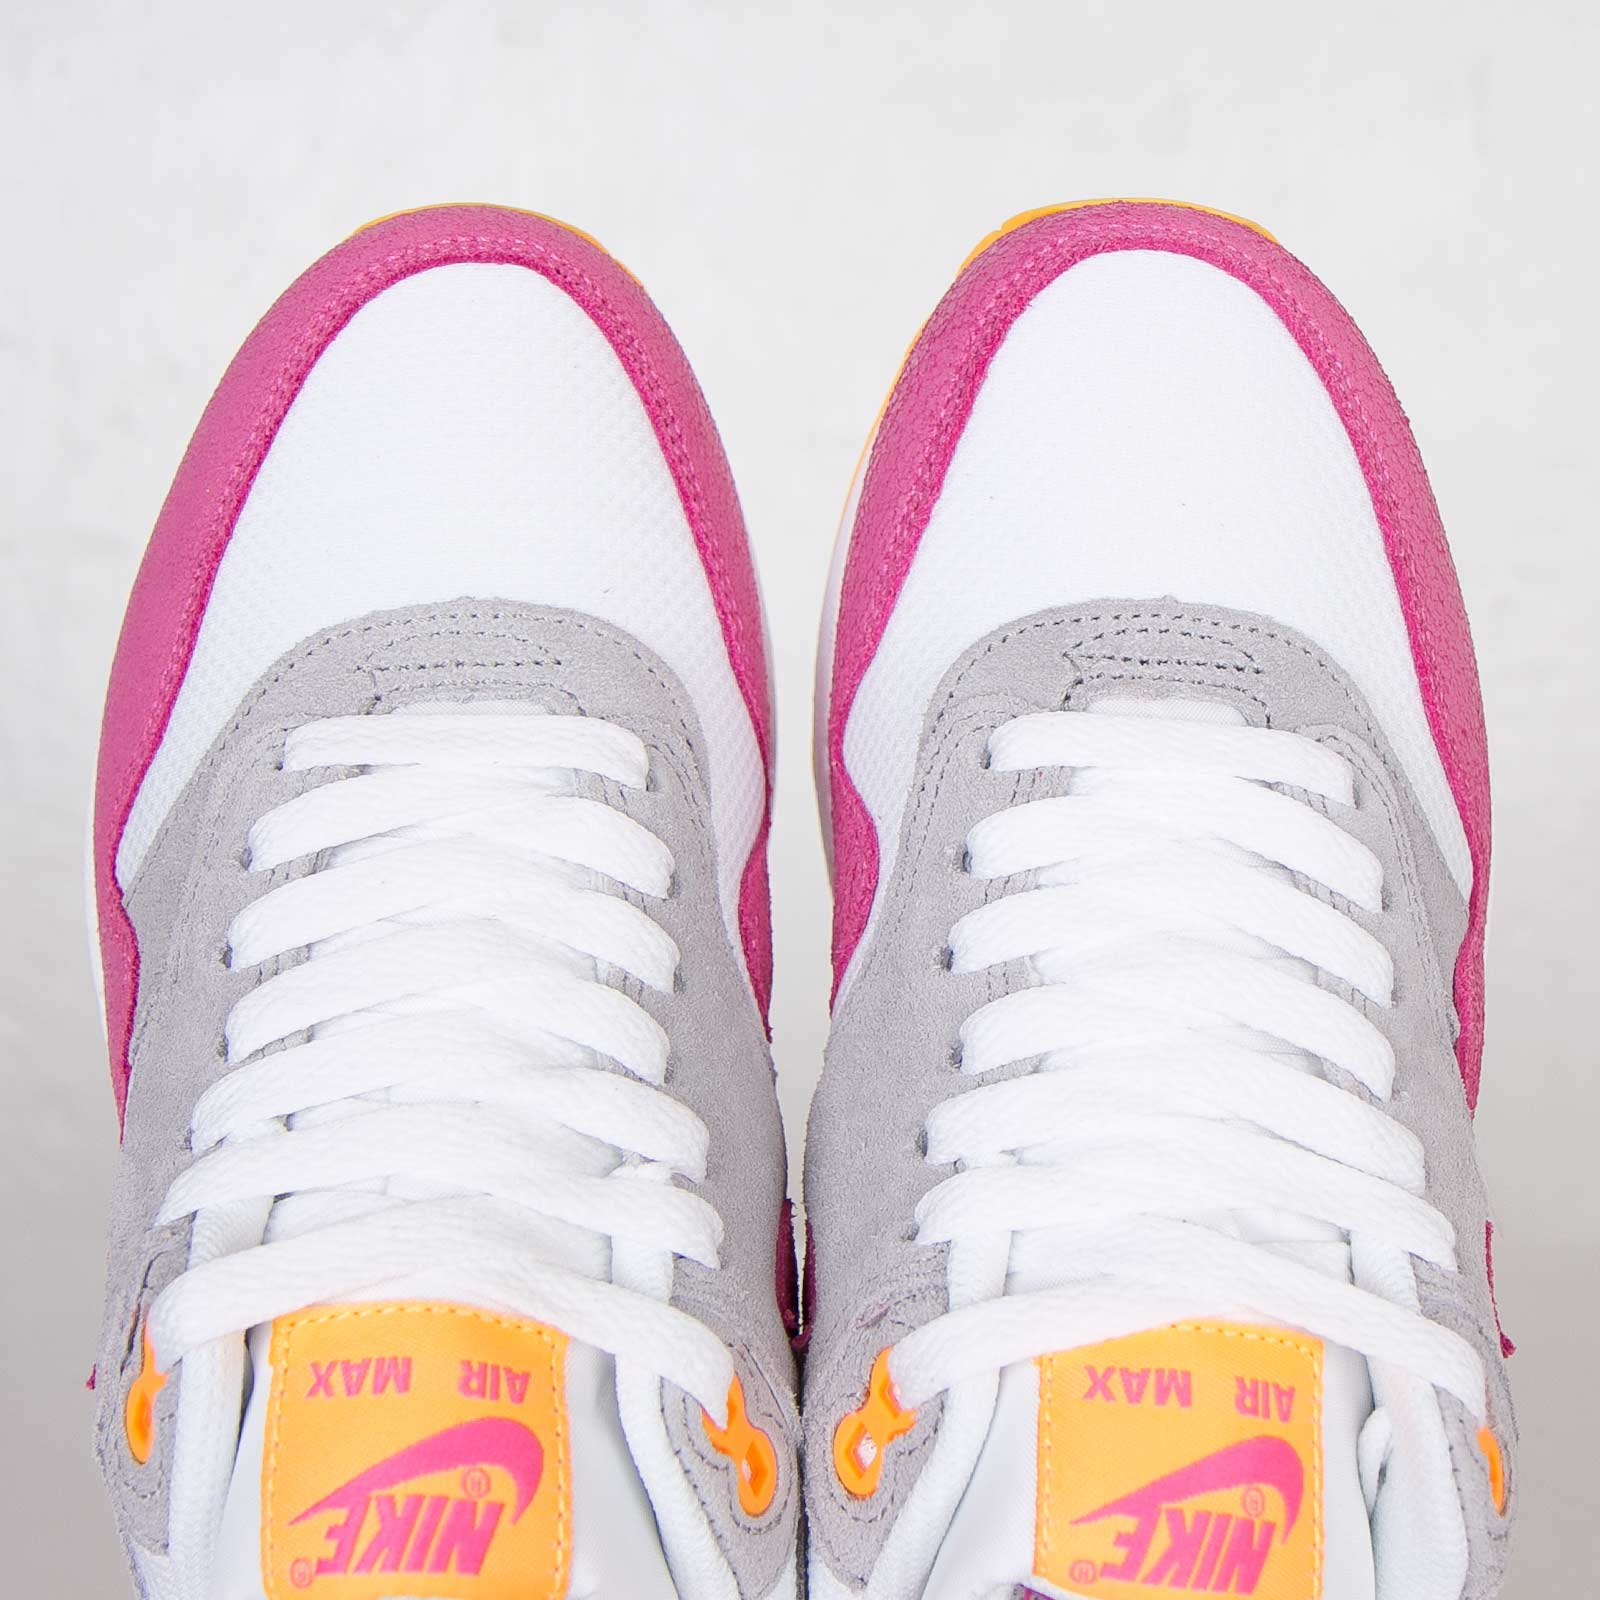 separation shoes aae6e 5a70b Nike Wmns Air Max 1 Essential - 599820-107 - Sneakersnstuff   sneakers    streetwear online since 1999